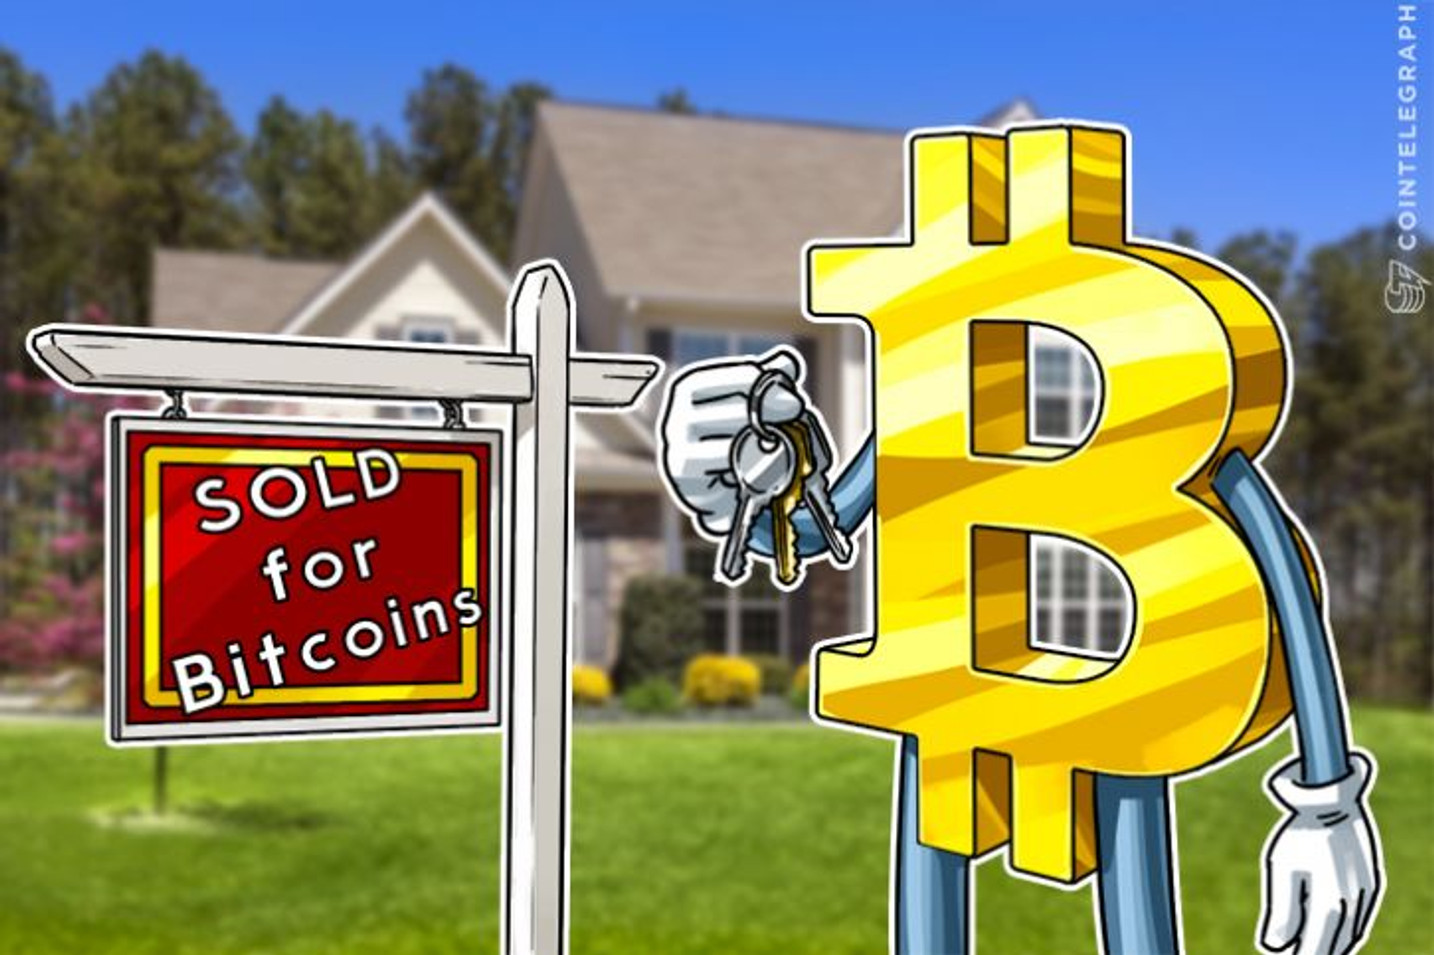 Bitcoin-Only Property Sale: UNESCO World Heritage Site in Ibiza for 1,850 BTC